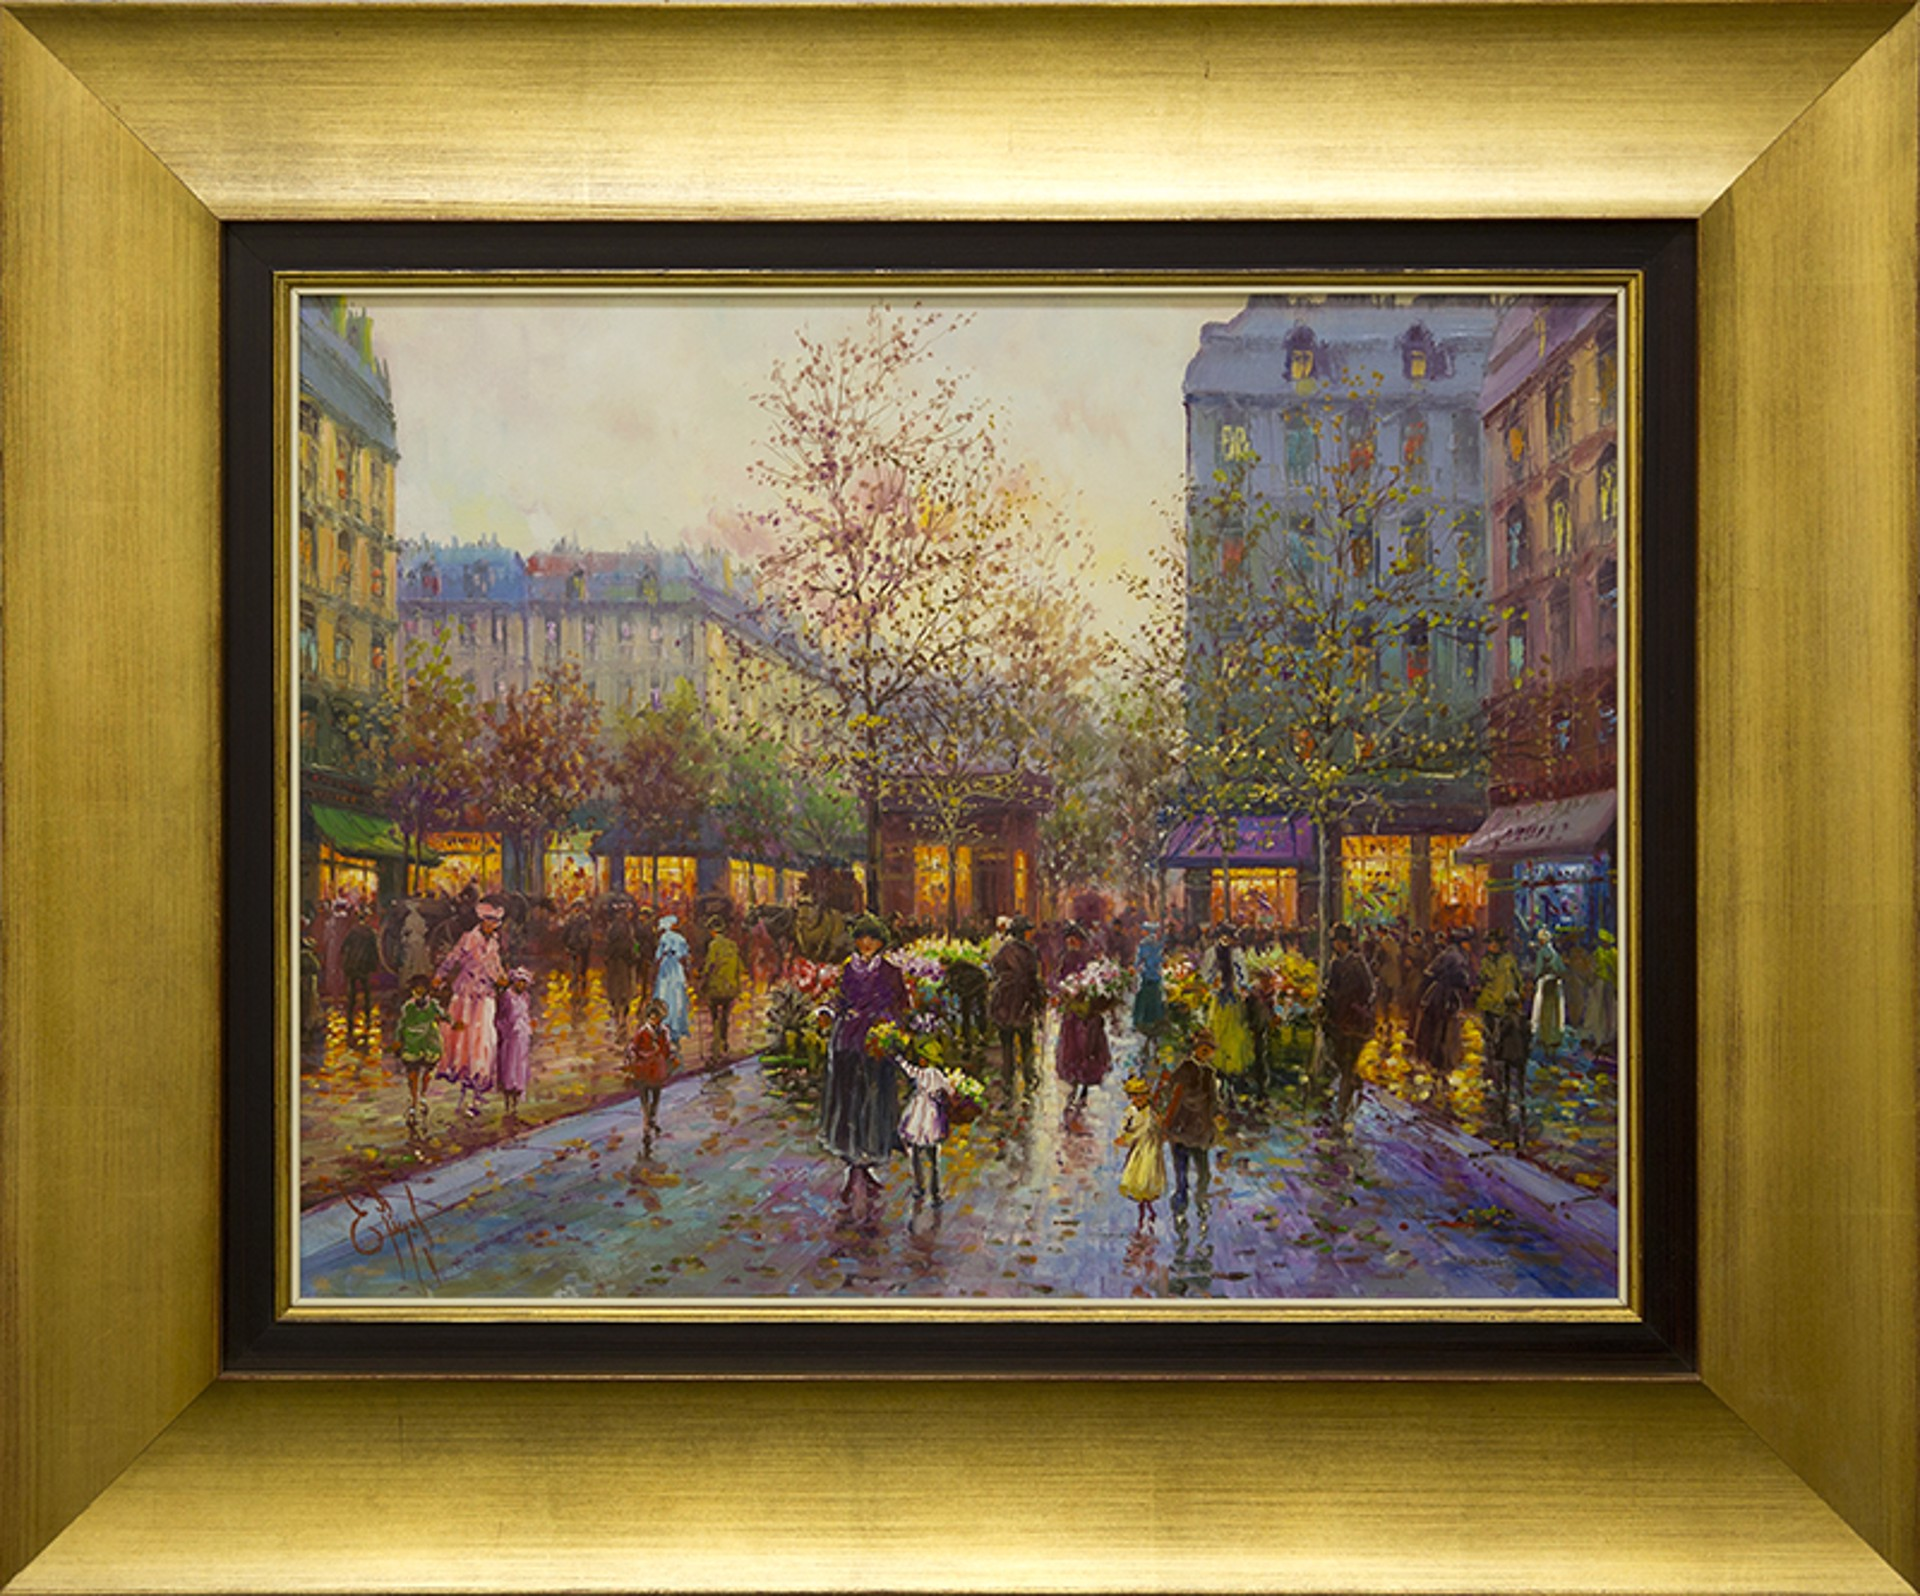 Truly Paris by Emilio Payes